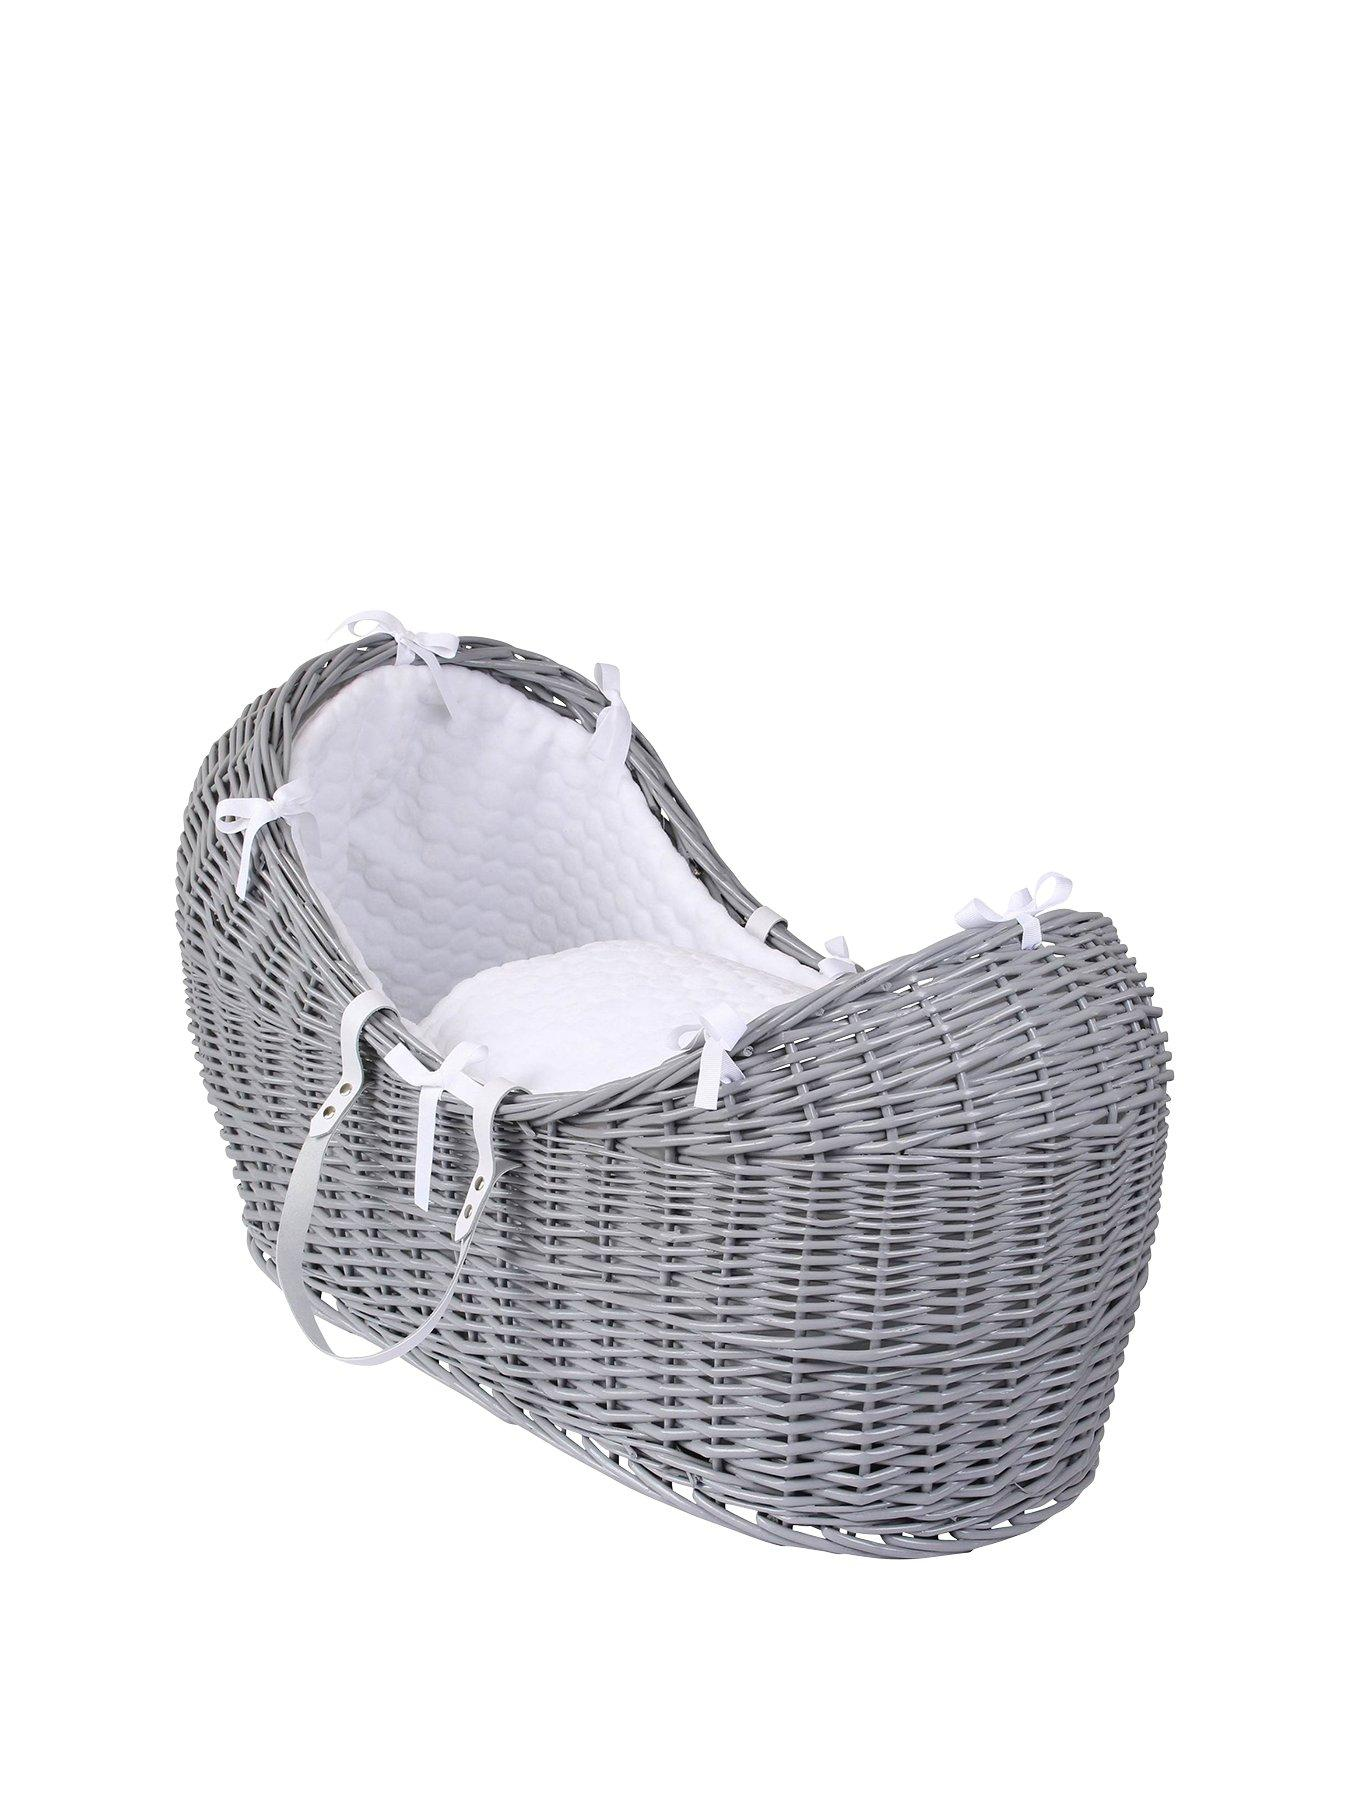 WHITE MARSHMELLOW FLEECE SNUG POD,NOAH BASKET DRESSING SET.GREY BLUE DIMPLE